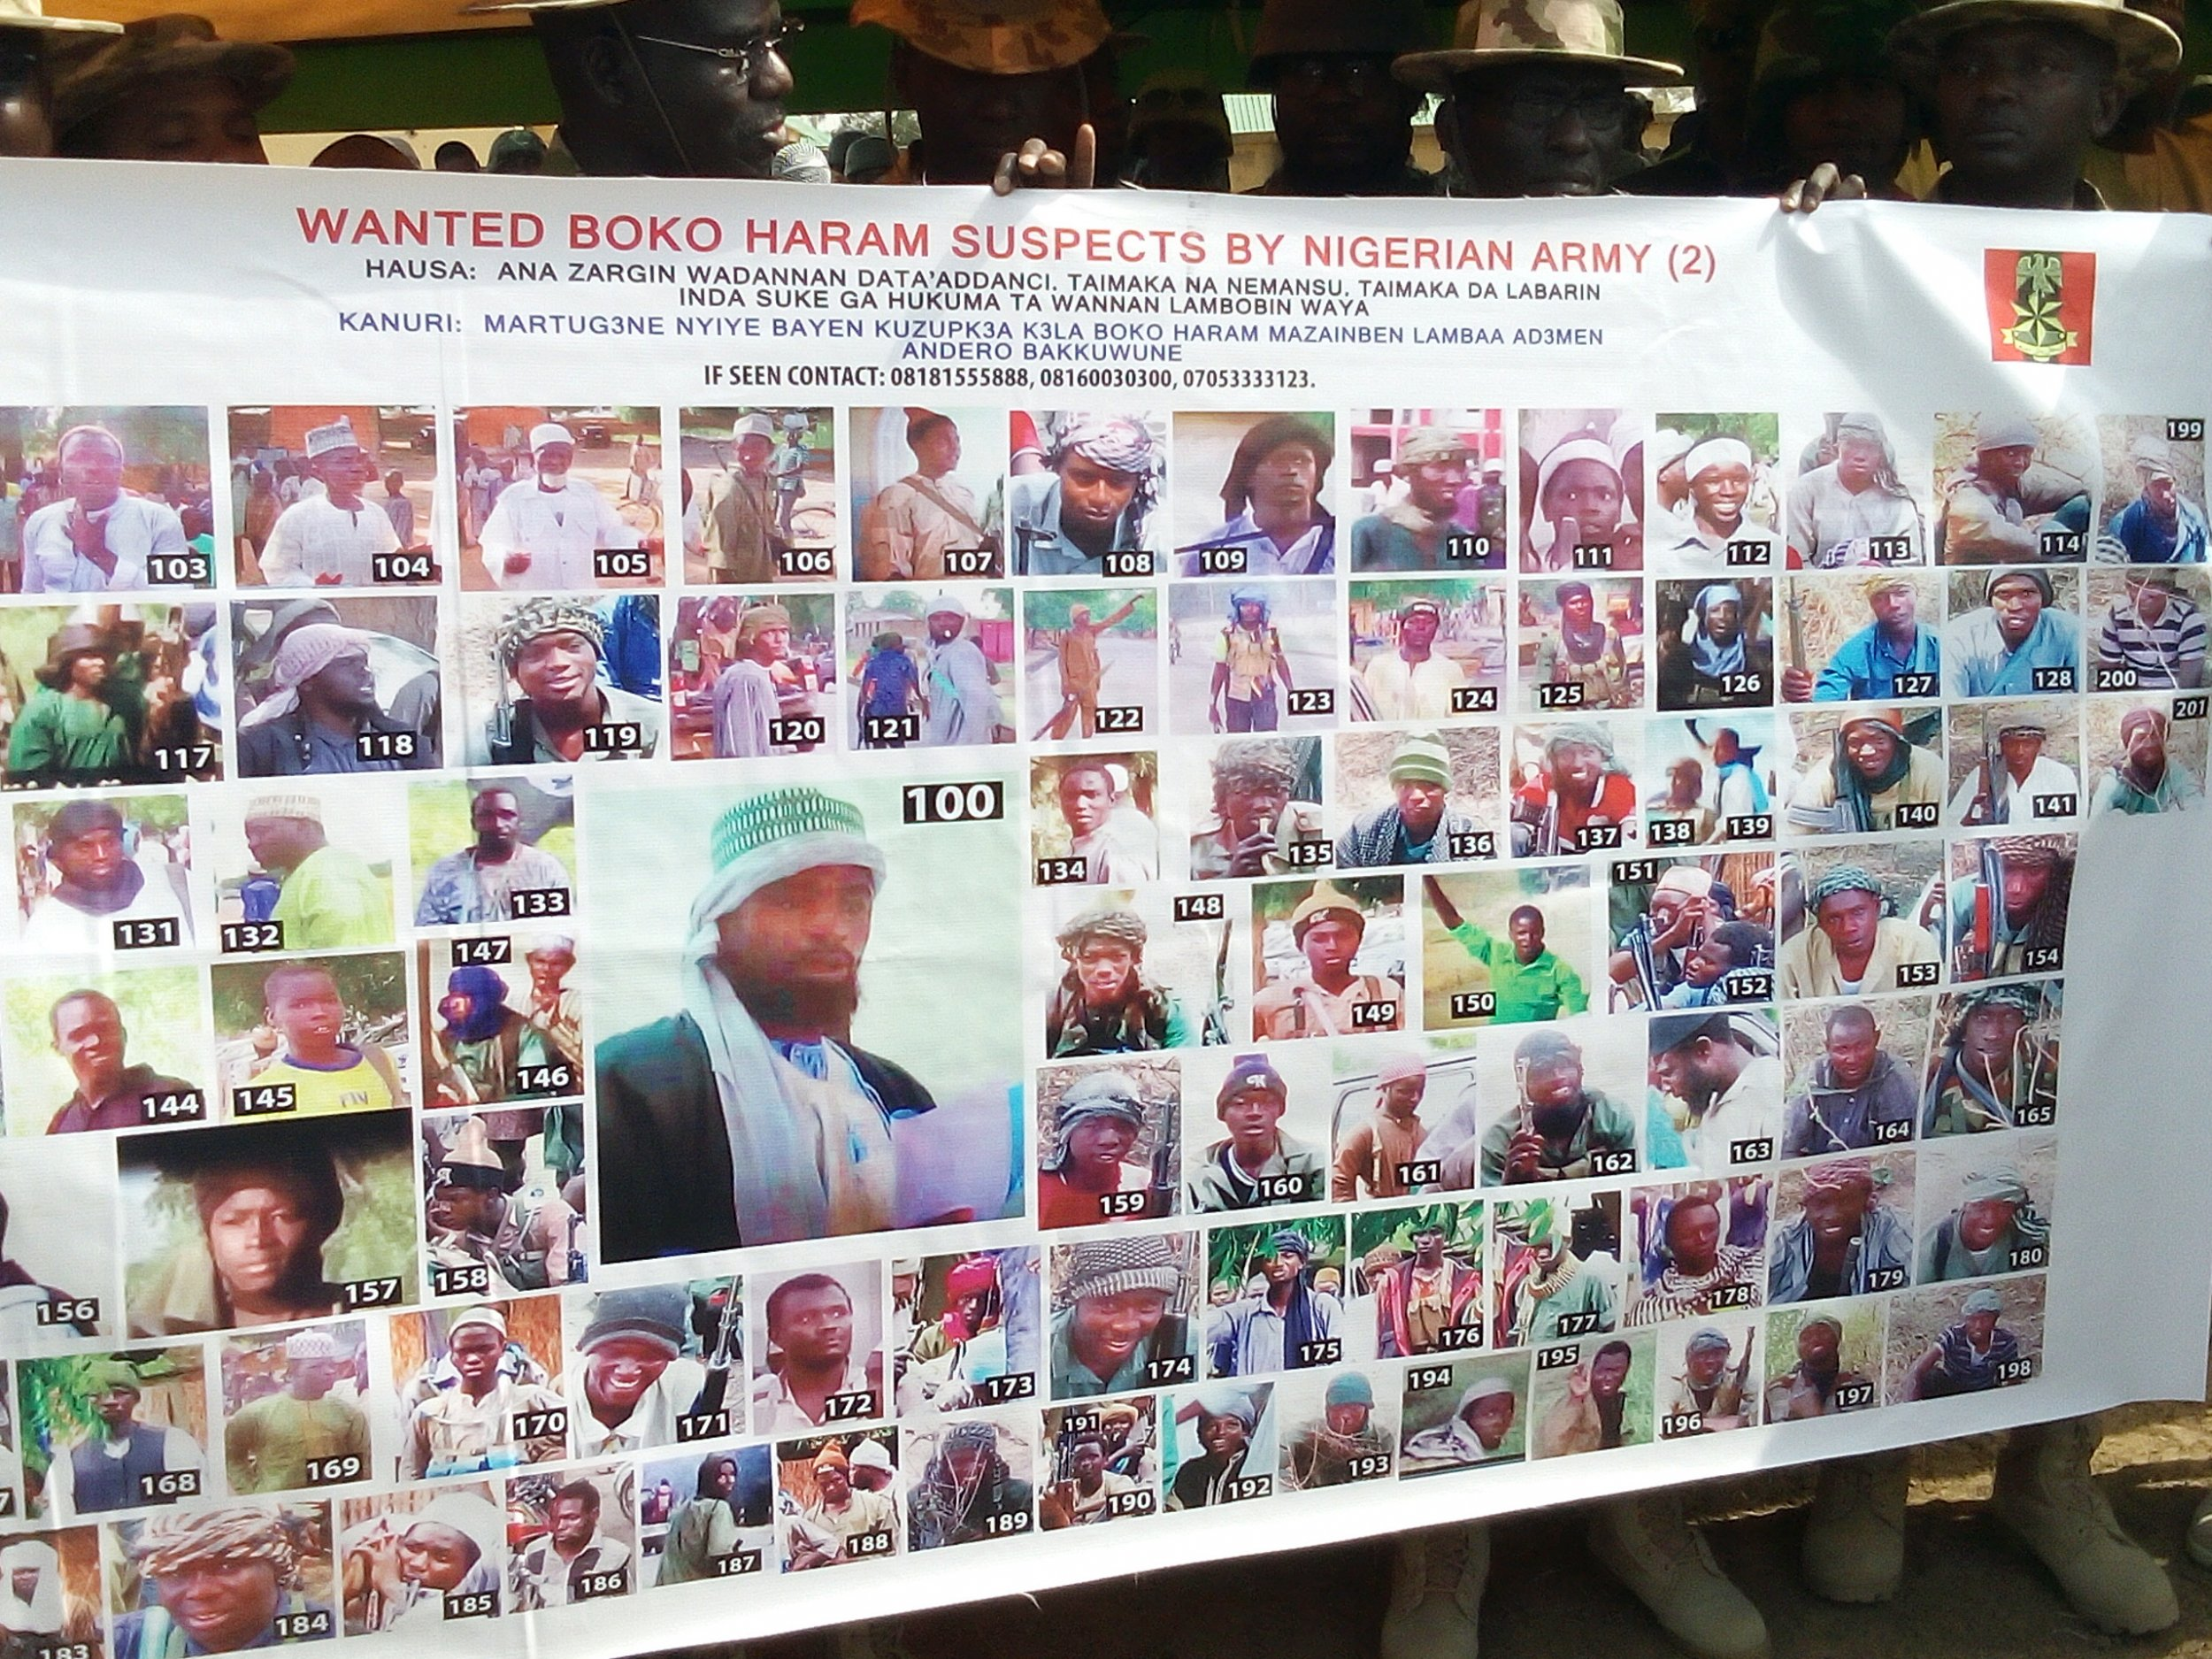 A banner shows 100 most wanted Boko Haram suspects.